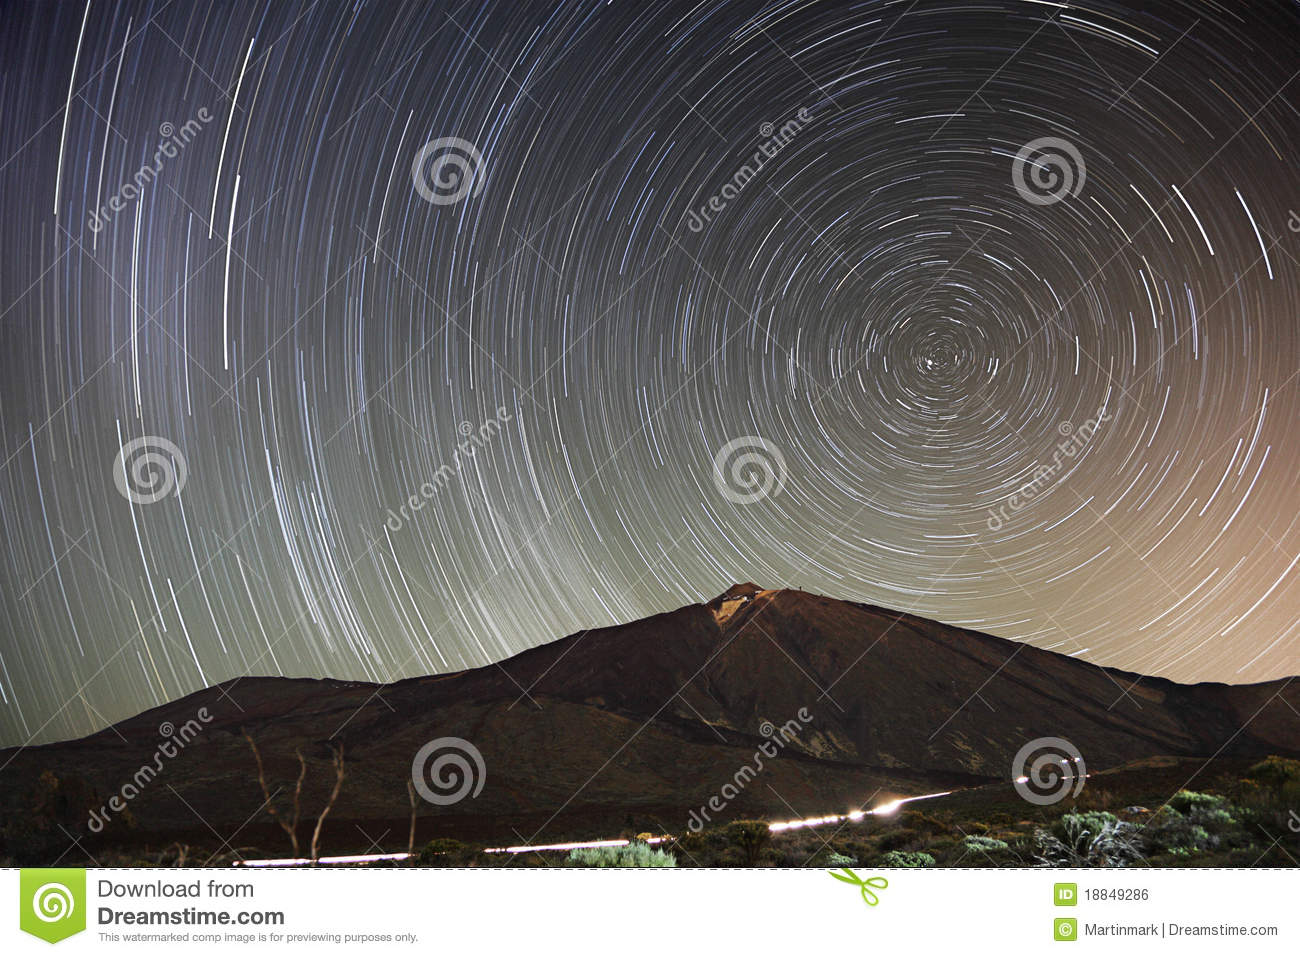 Stars - Star trail night sky, Teide, Tenerife